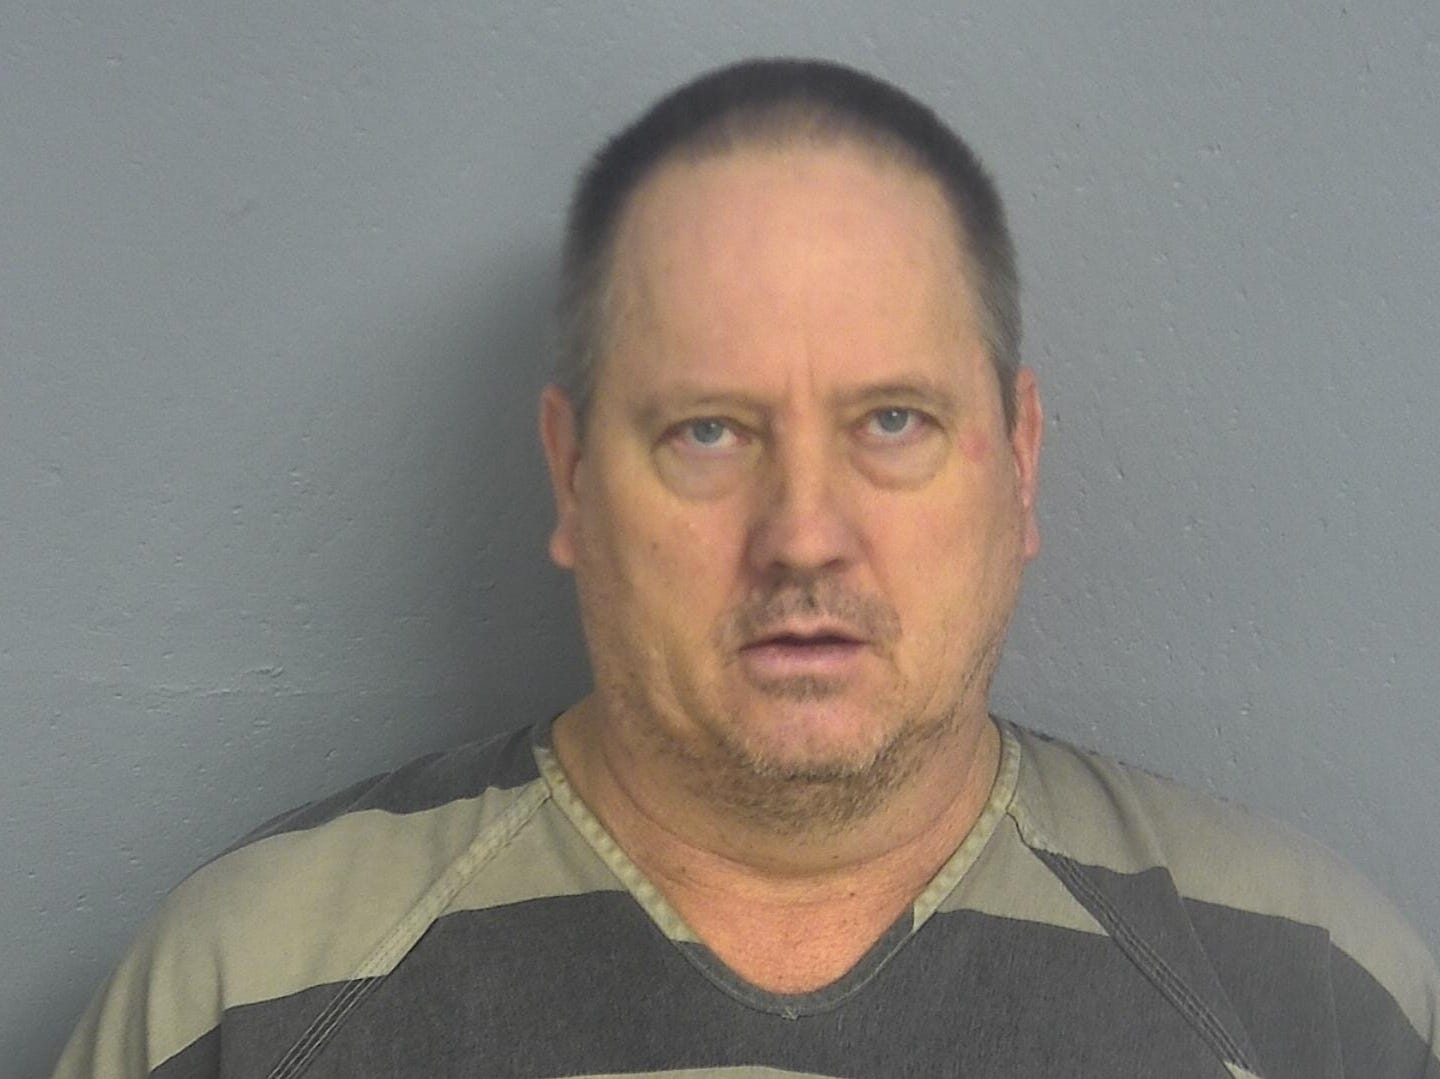 Donald Weber has been in jail for two  years, six months and 20 days. He is facing six felonies after police say he tried to abduct his former boss at a Springfield golf course. He has most recently been scheduled for mental evaluation.